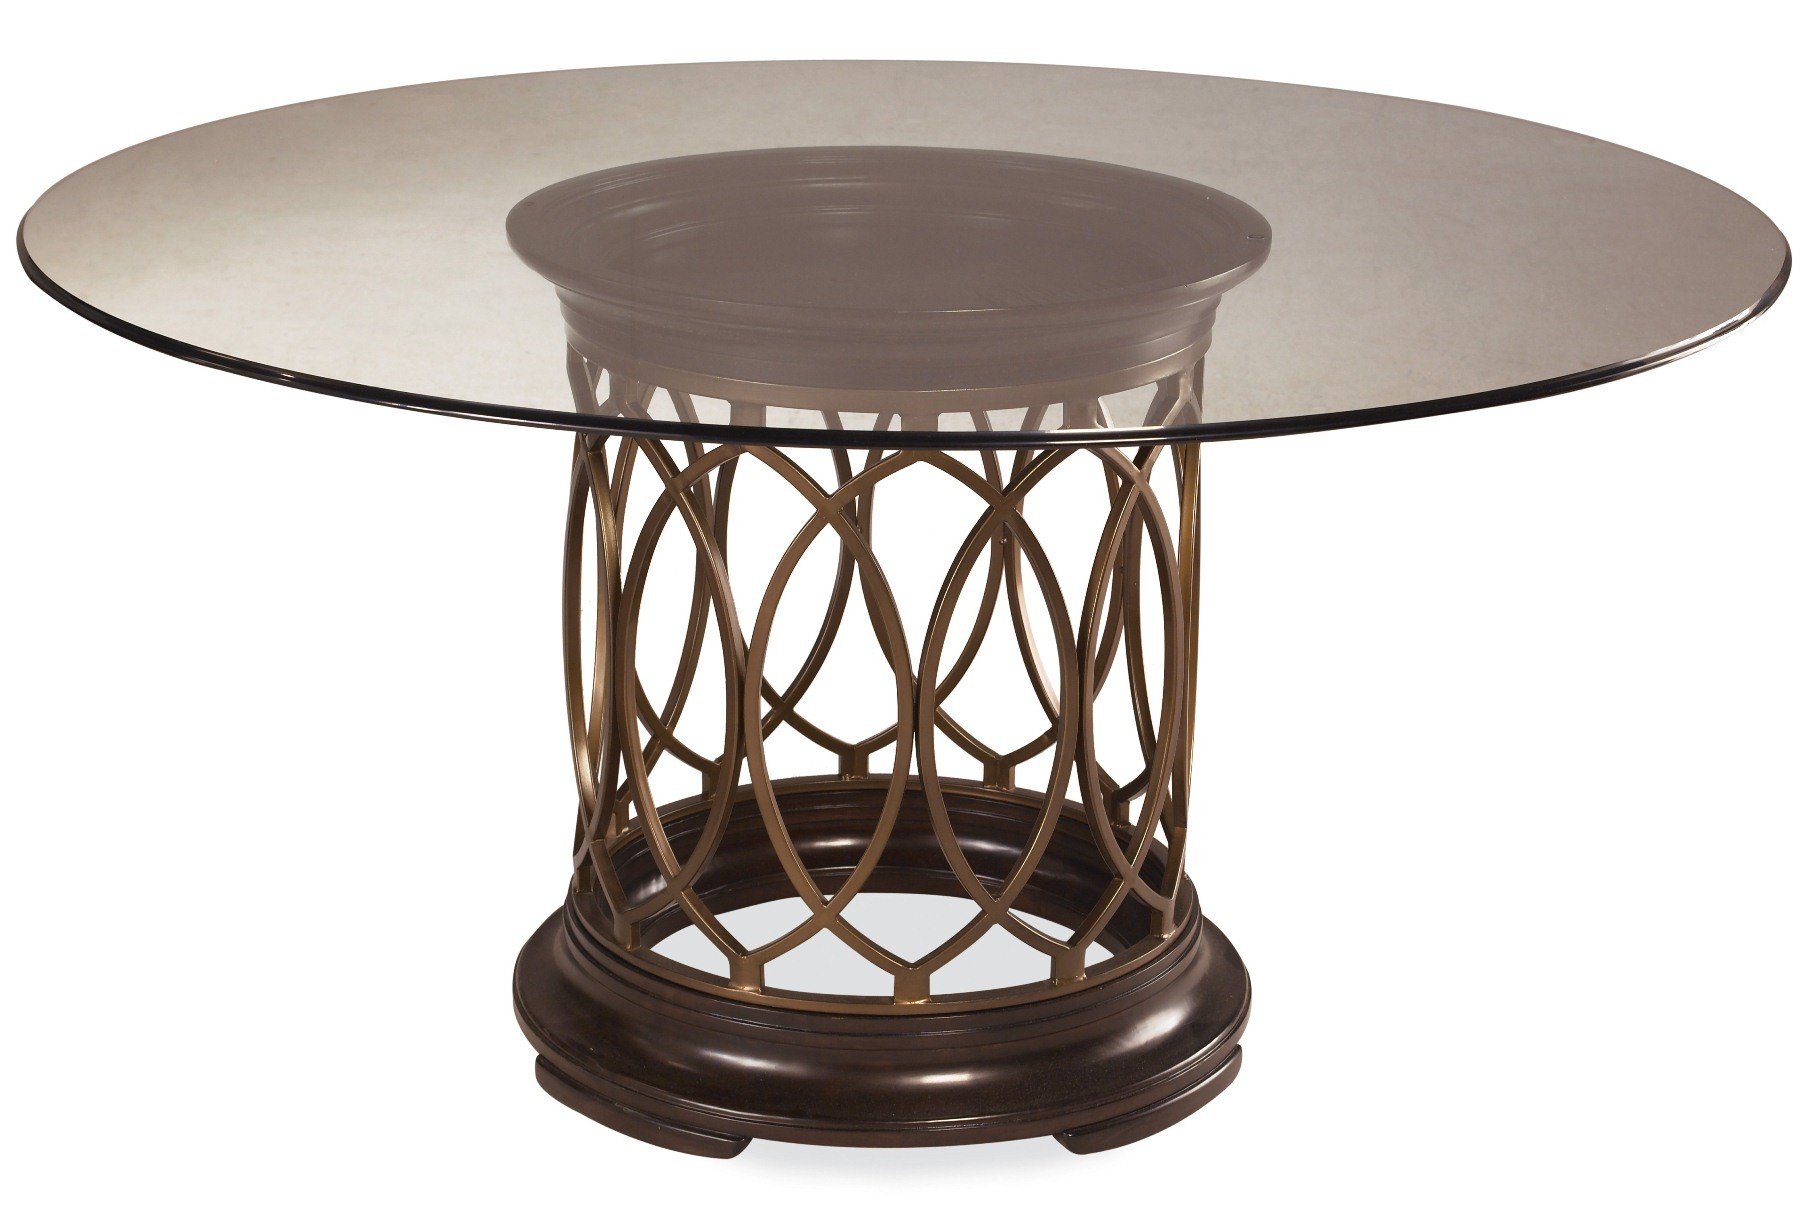 Intrigue Round Dining Table with Glass Top from ART ...